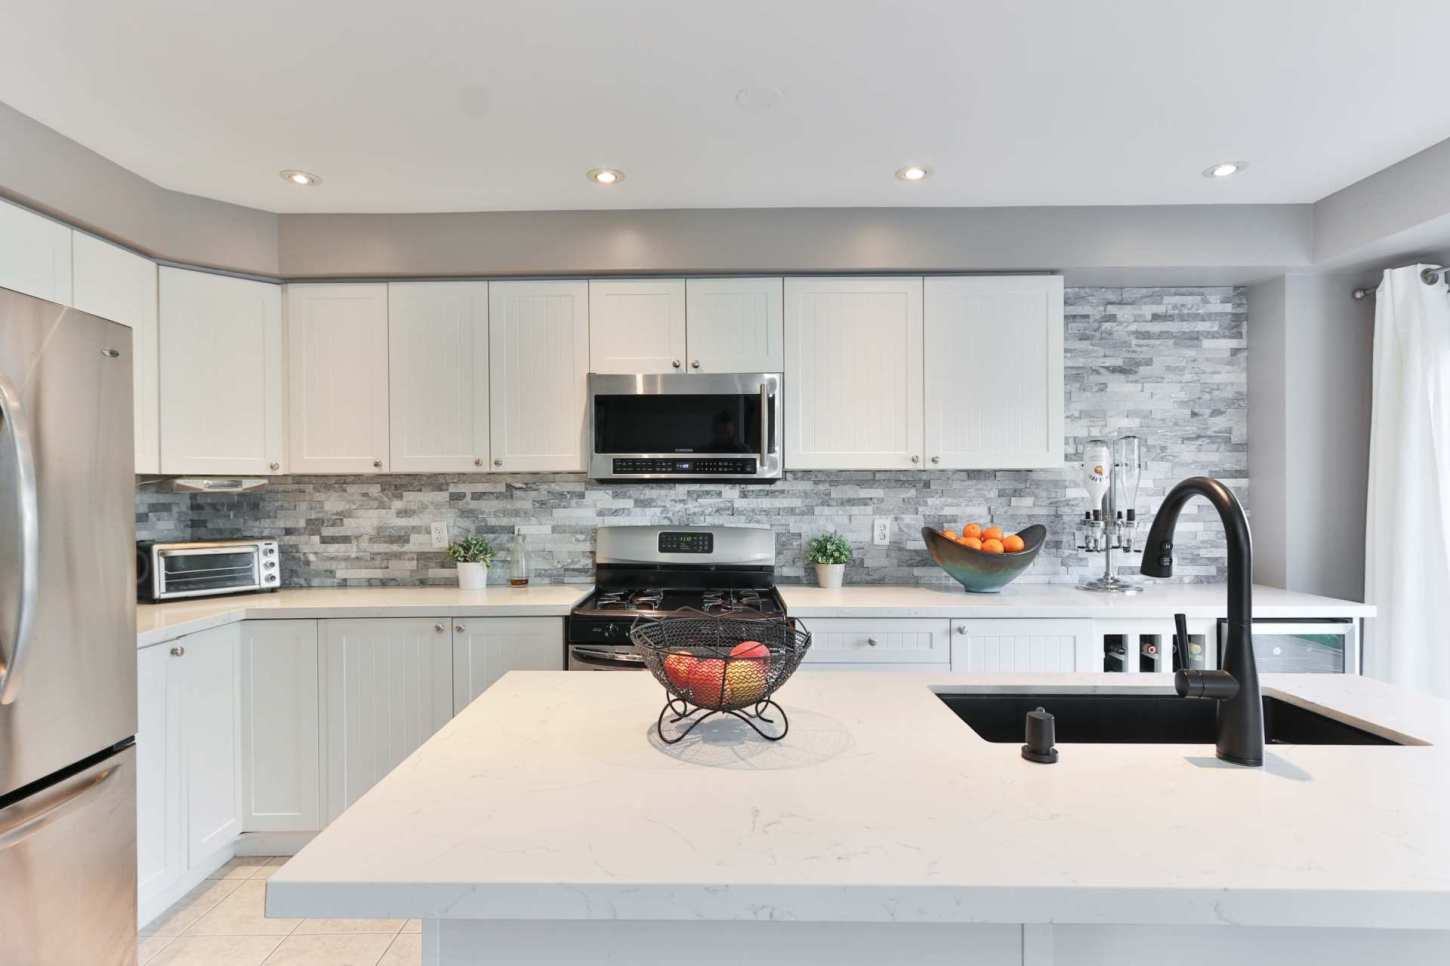 Kitchen Cabinet Painting & Refinishing Companies | Services